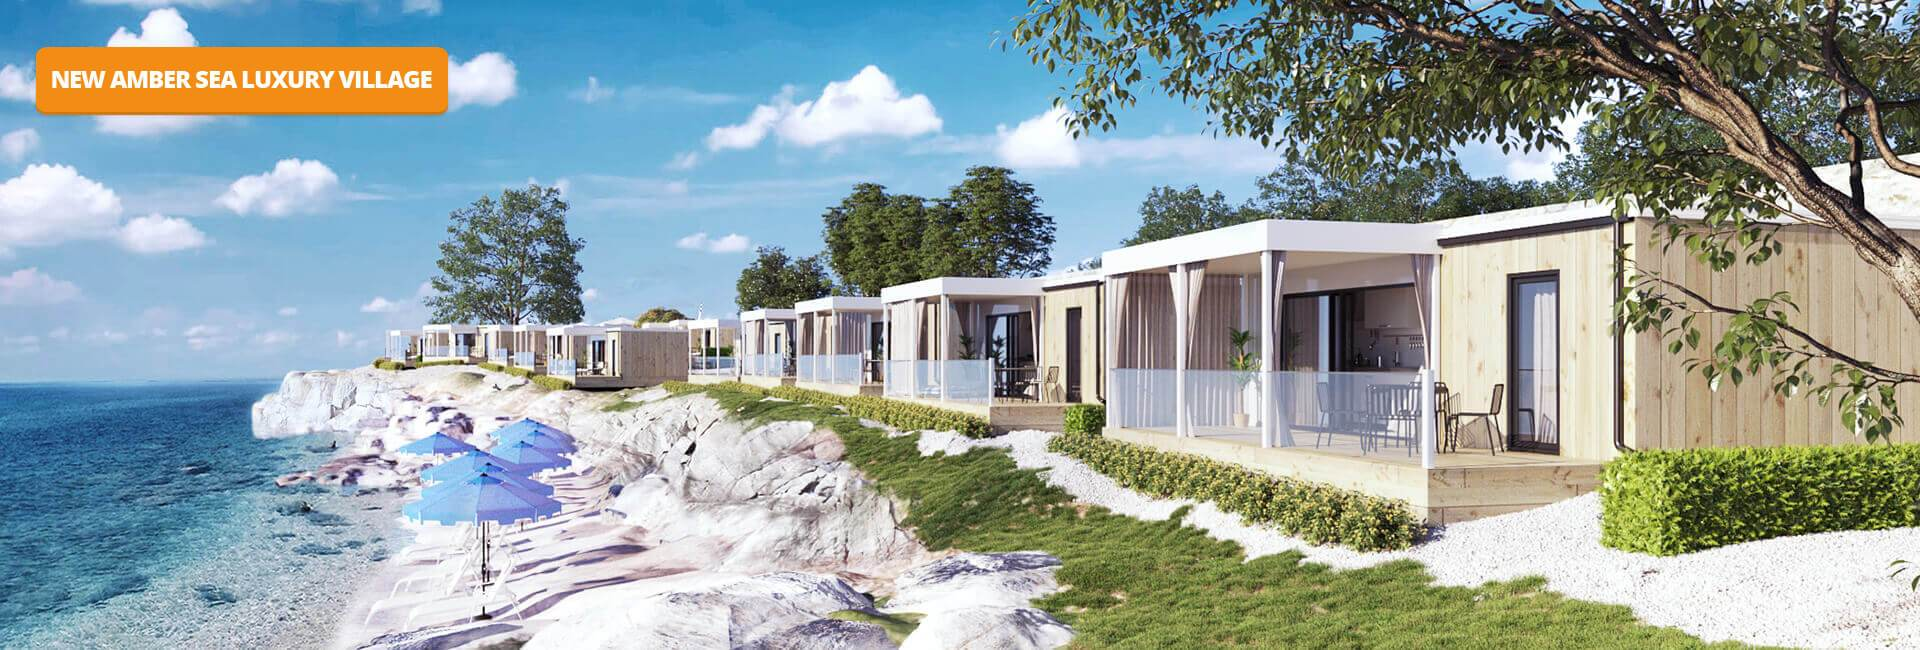 Campiste Aminess Park Mareda Amber Sea Luxury mobile homes terrace view